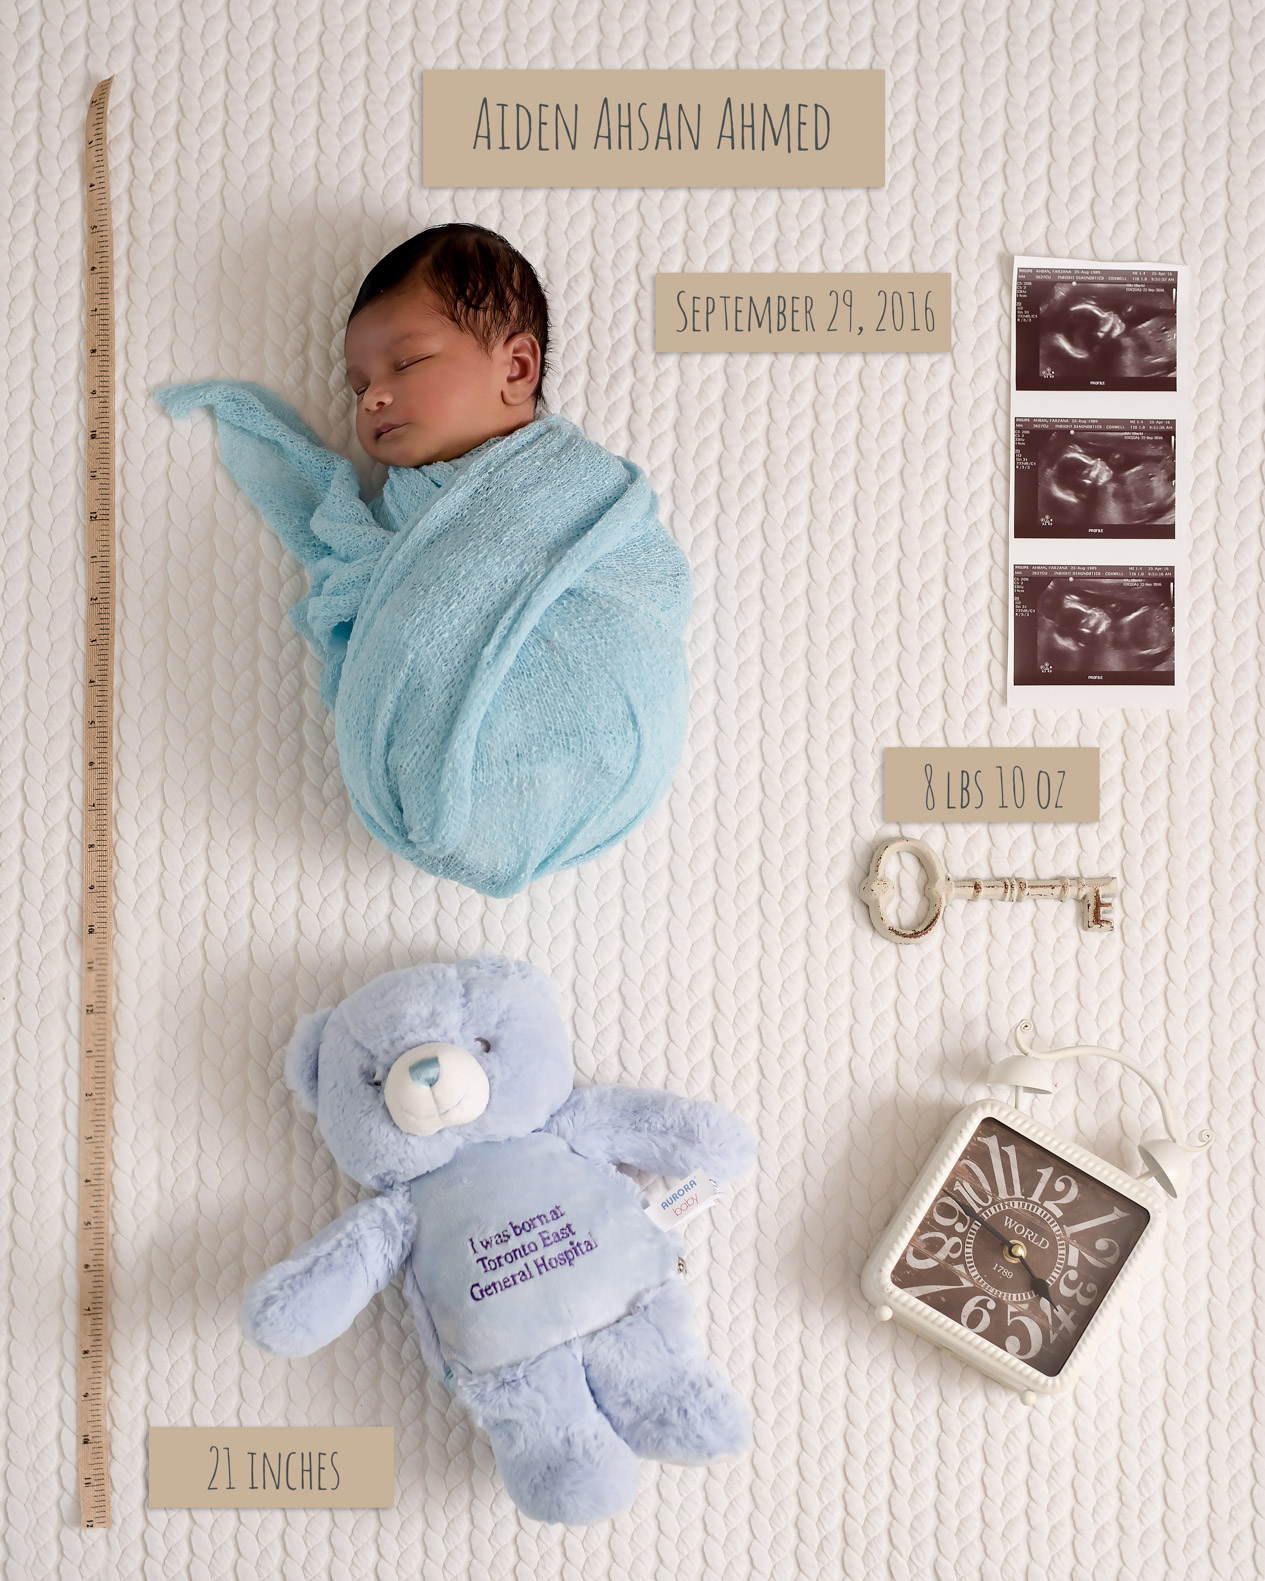 Baby AidenDSC_2757-Edit-Edit.jpg